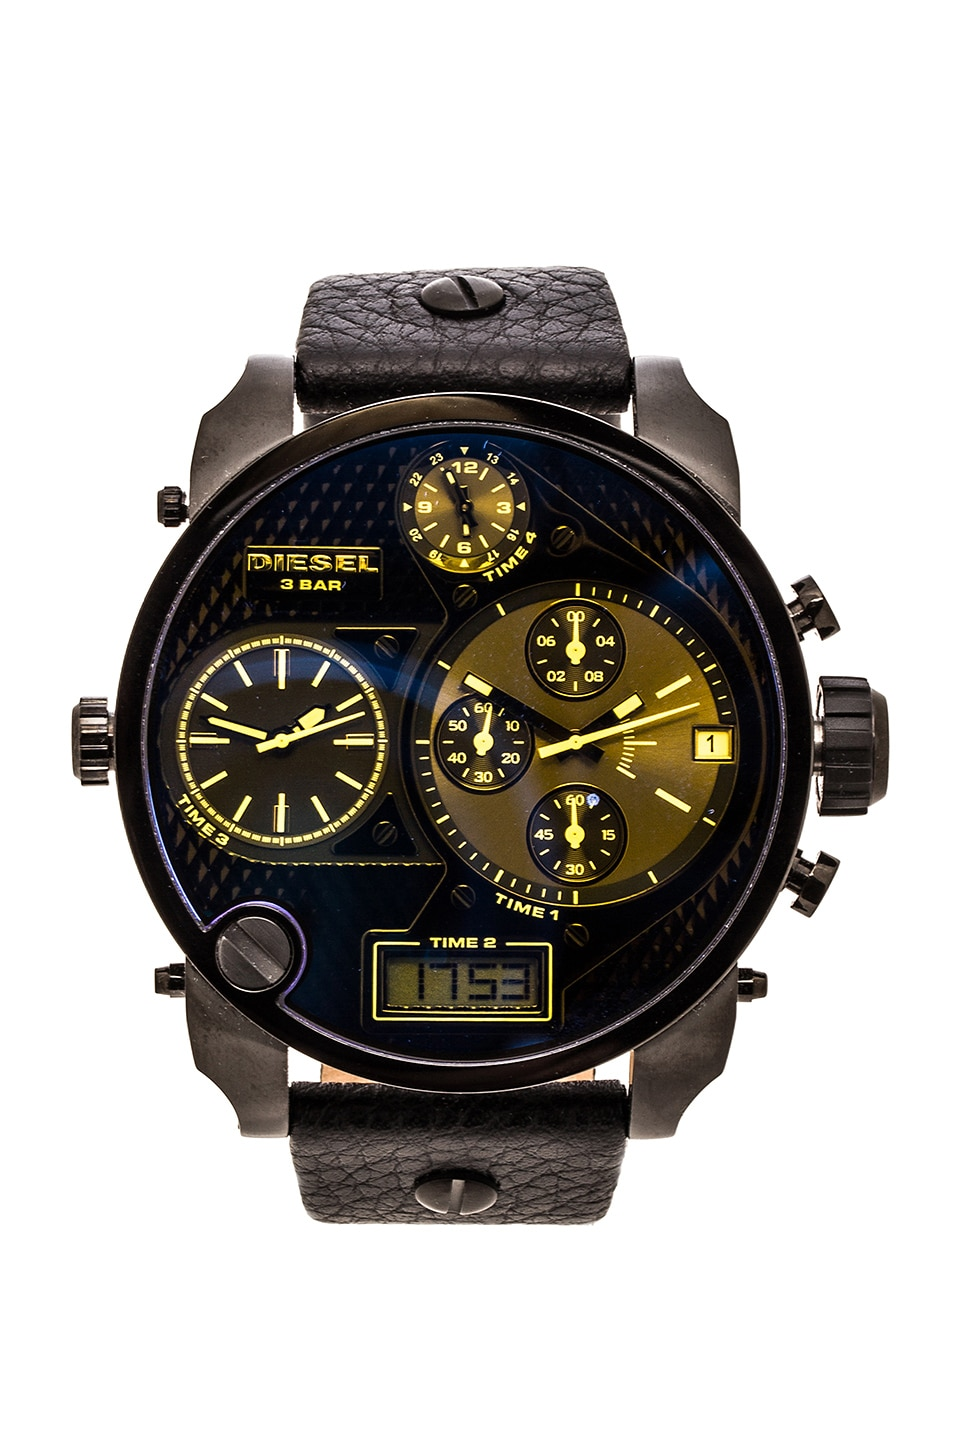 Diesel DZ7127 SBA Watch in Black